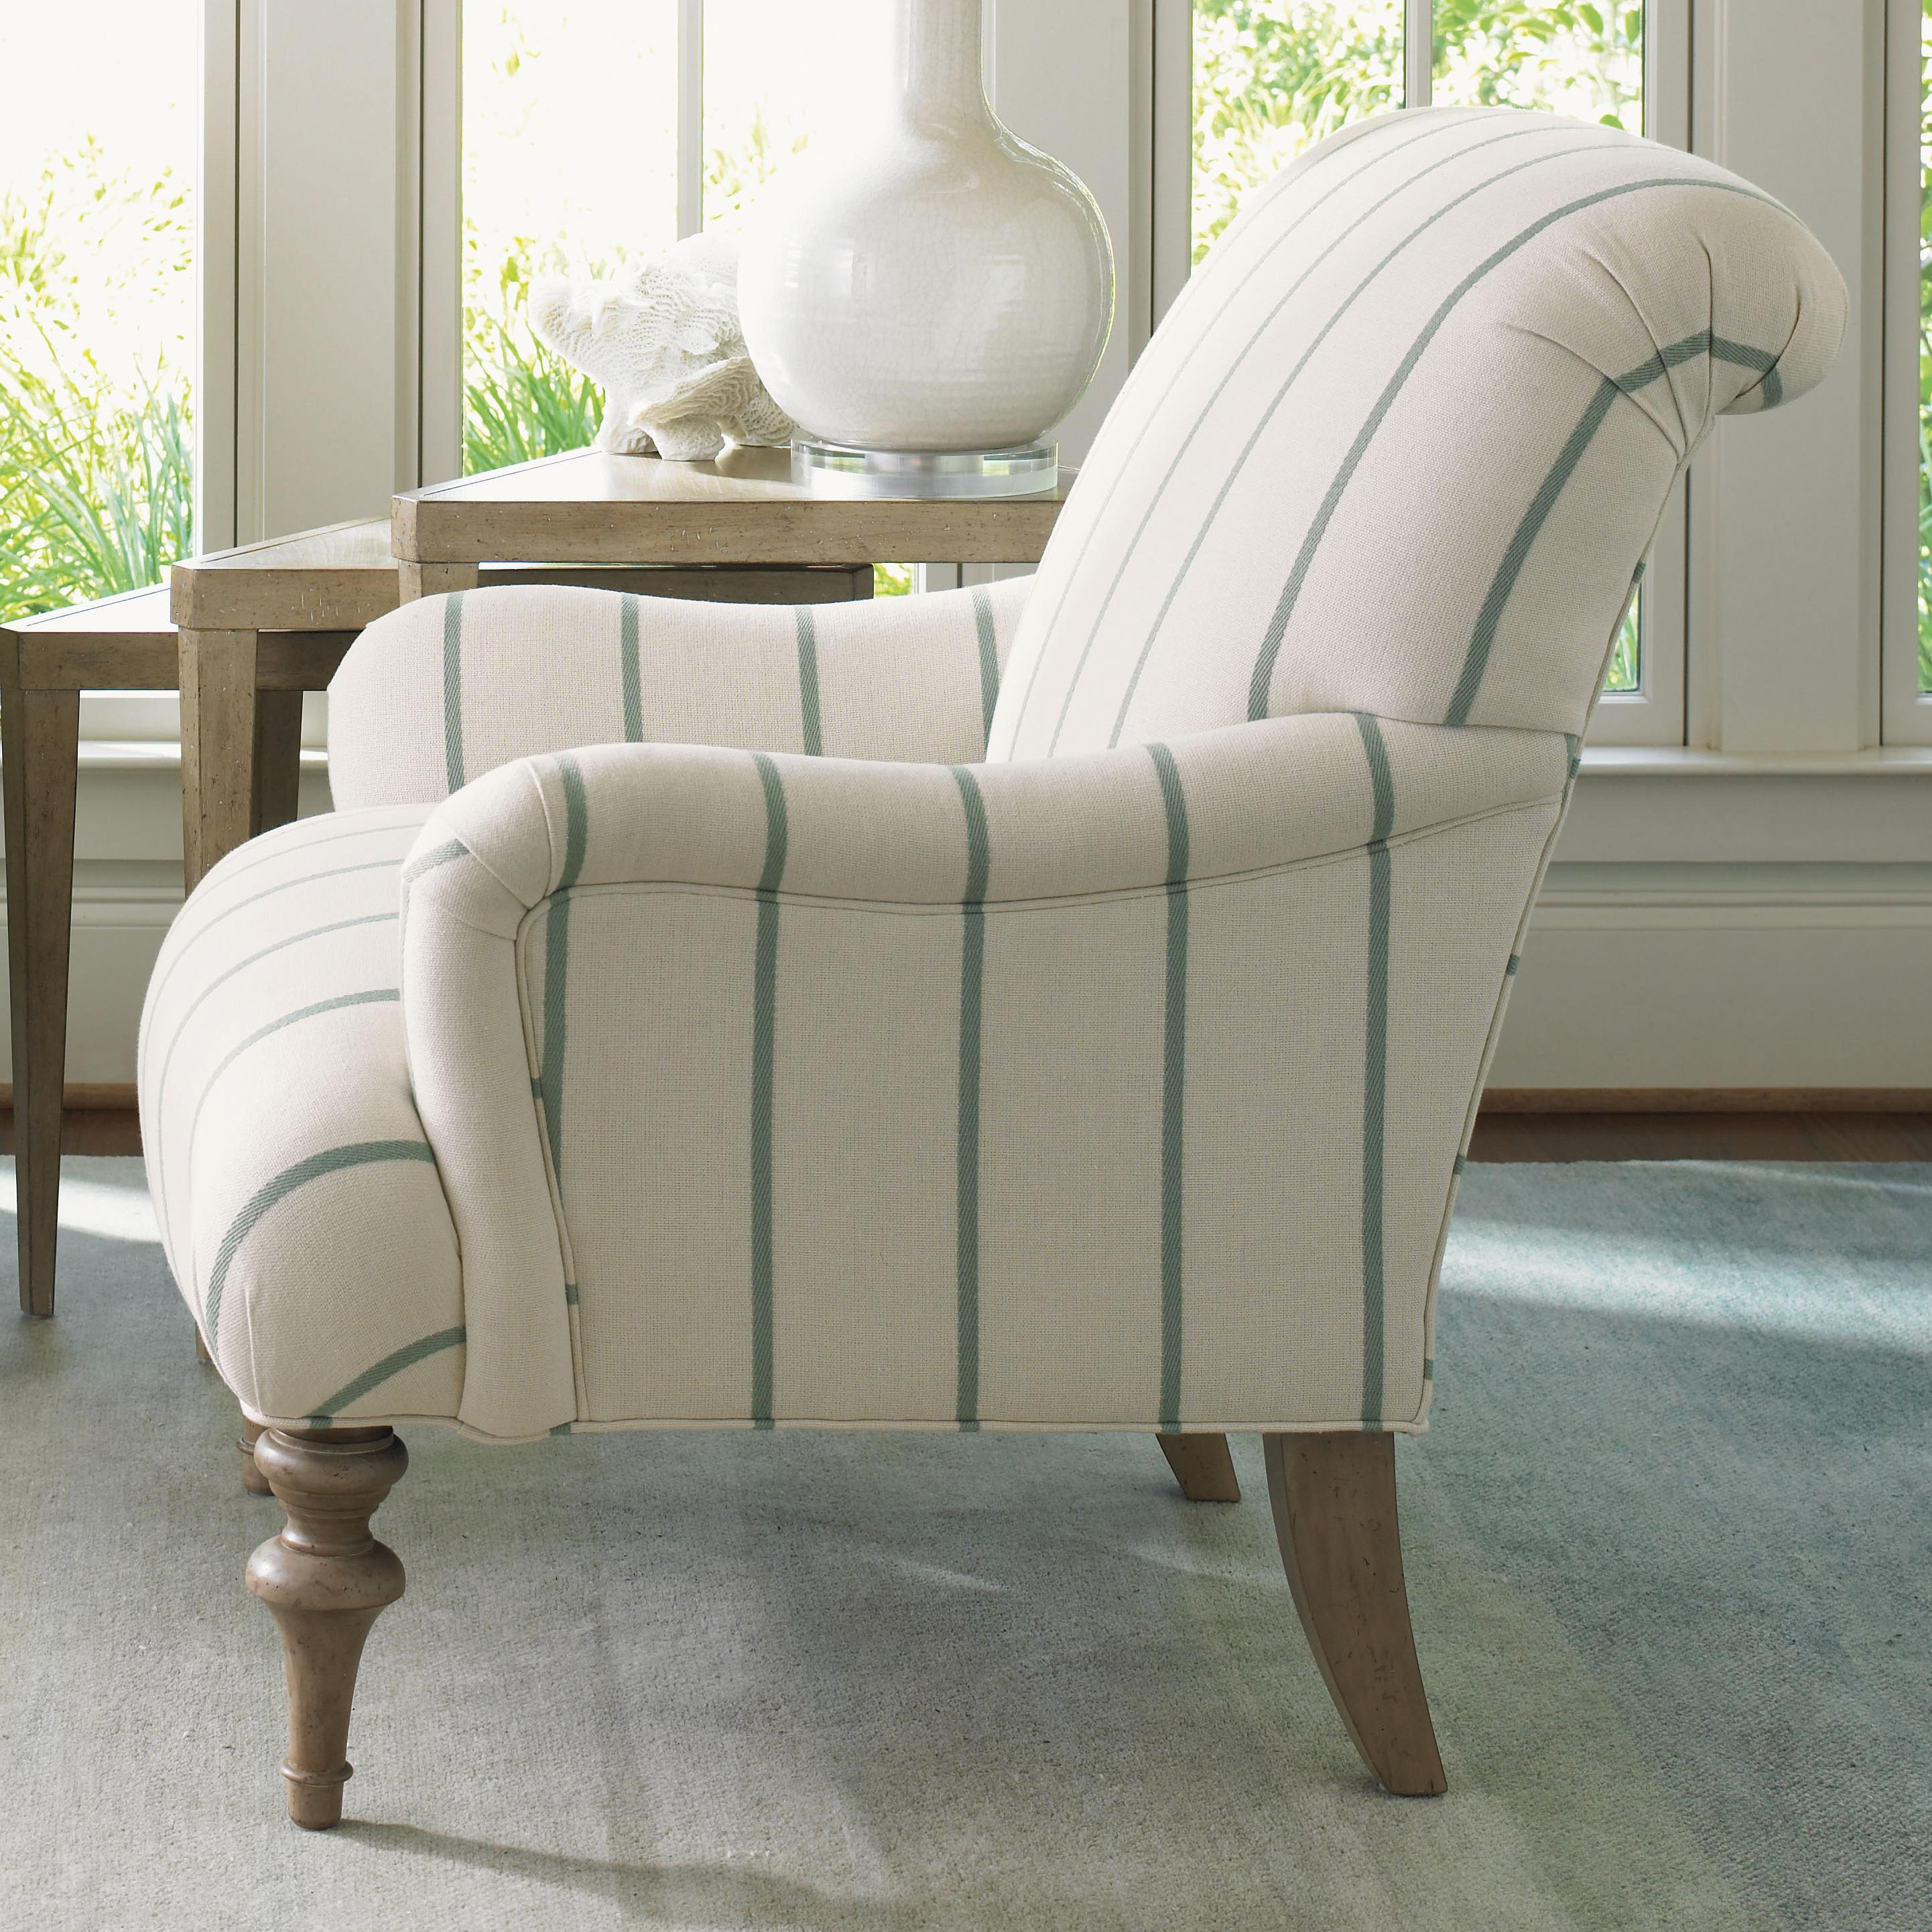 Monterey Sands Jay Chair by Lexington at Baer's Furniture